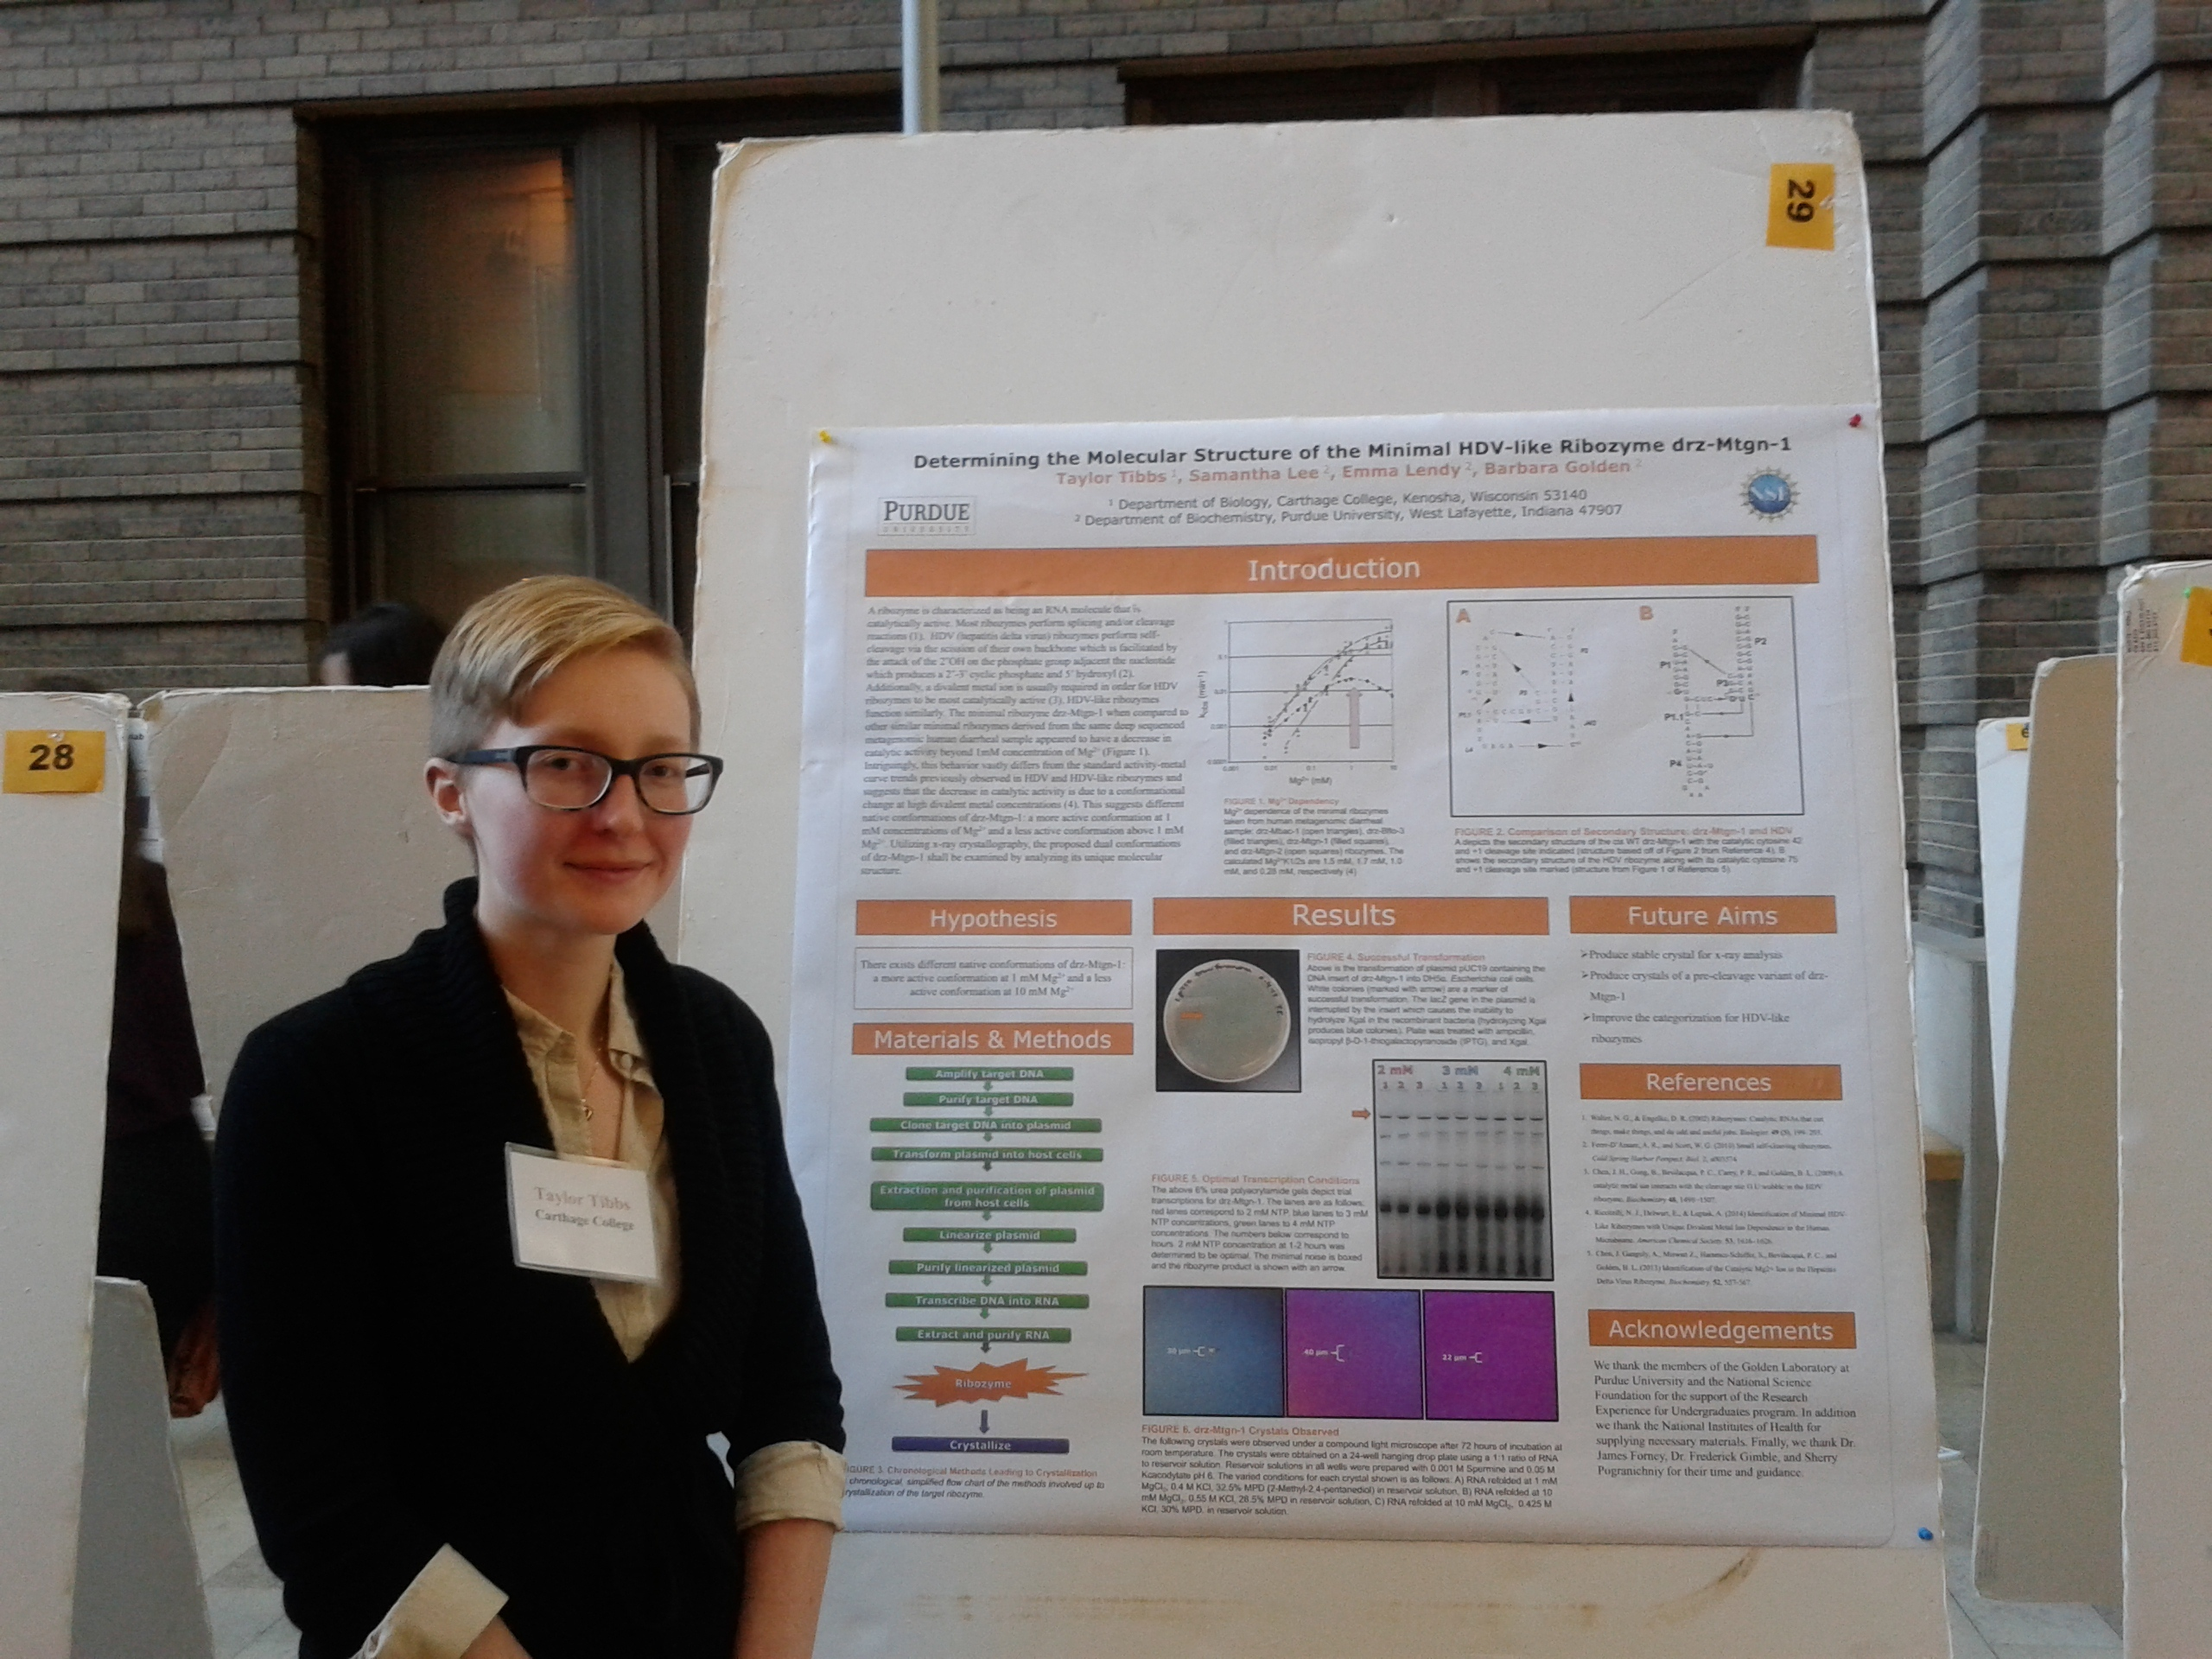 1460573965 taylor tibbs presenting a research poster at a